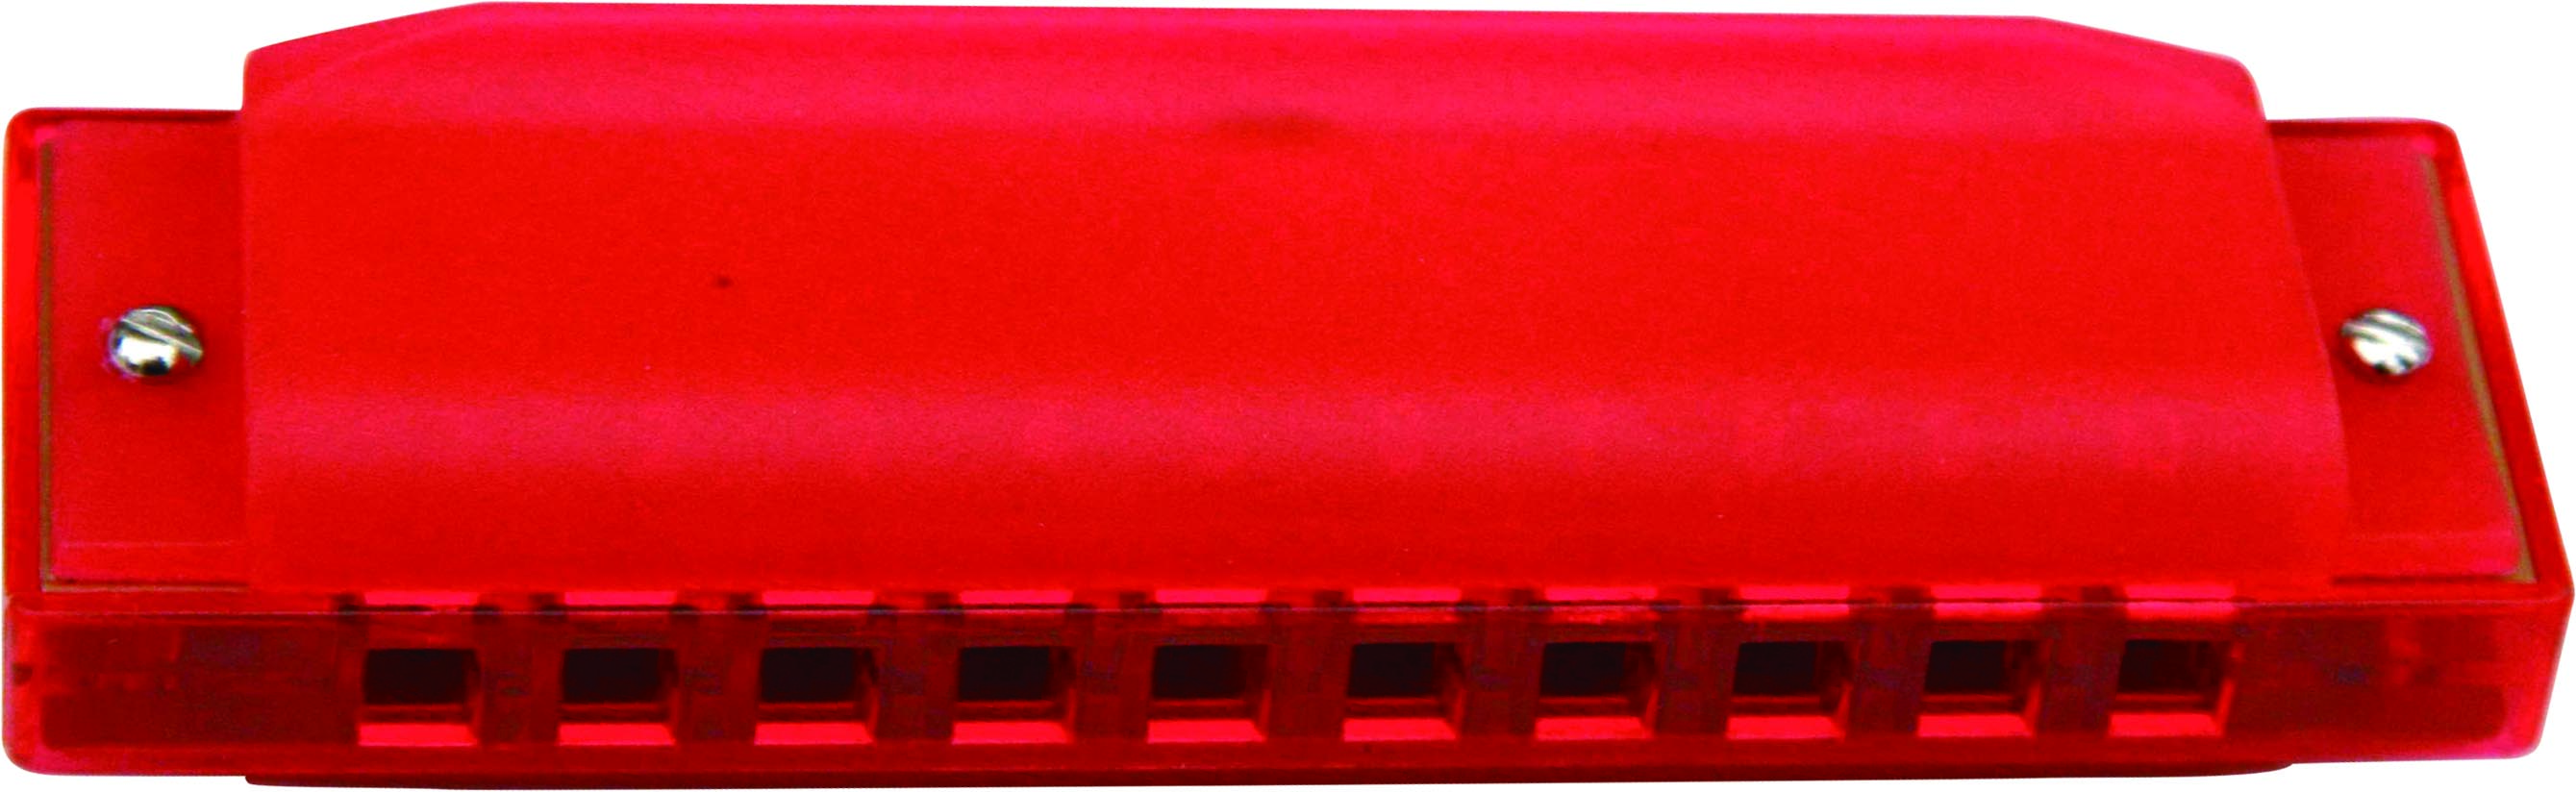 Swan 10 hole 20 tone plastic cover harmonica - red